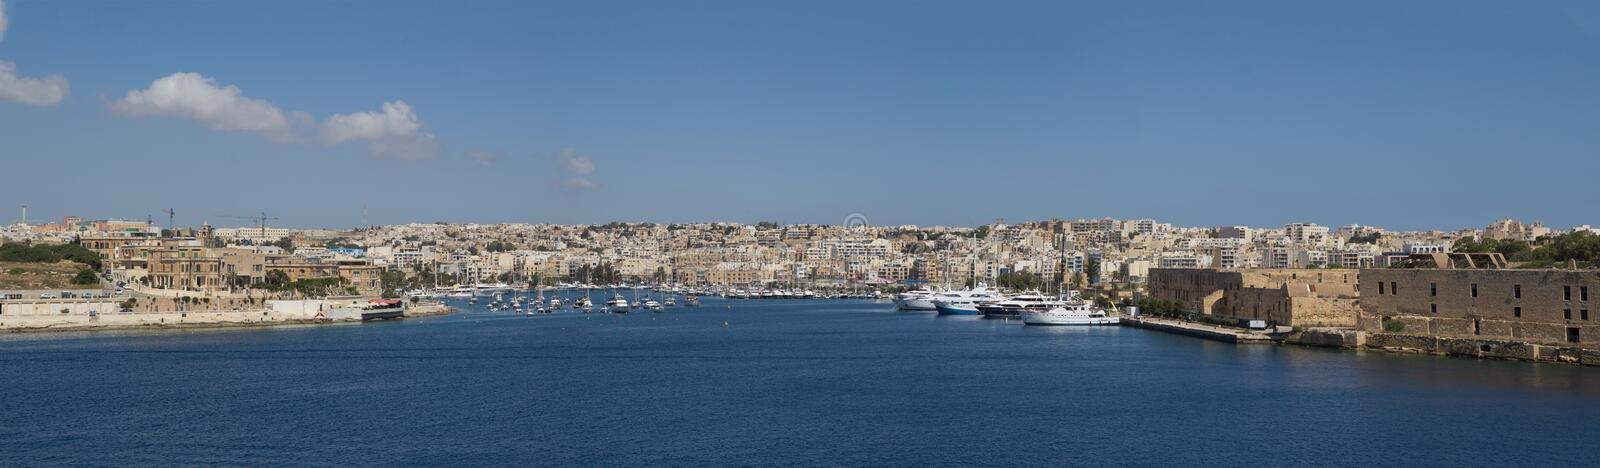 Download Malta Grand Harbor Royalty Free Stock Image - Image: 26959026